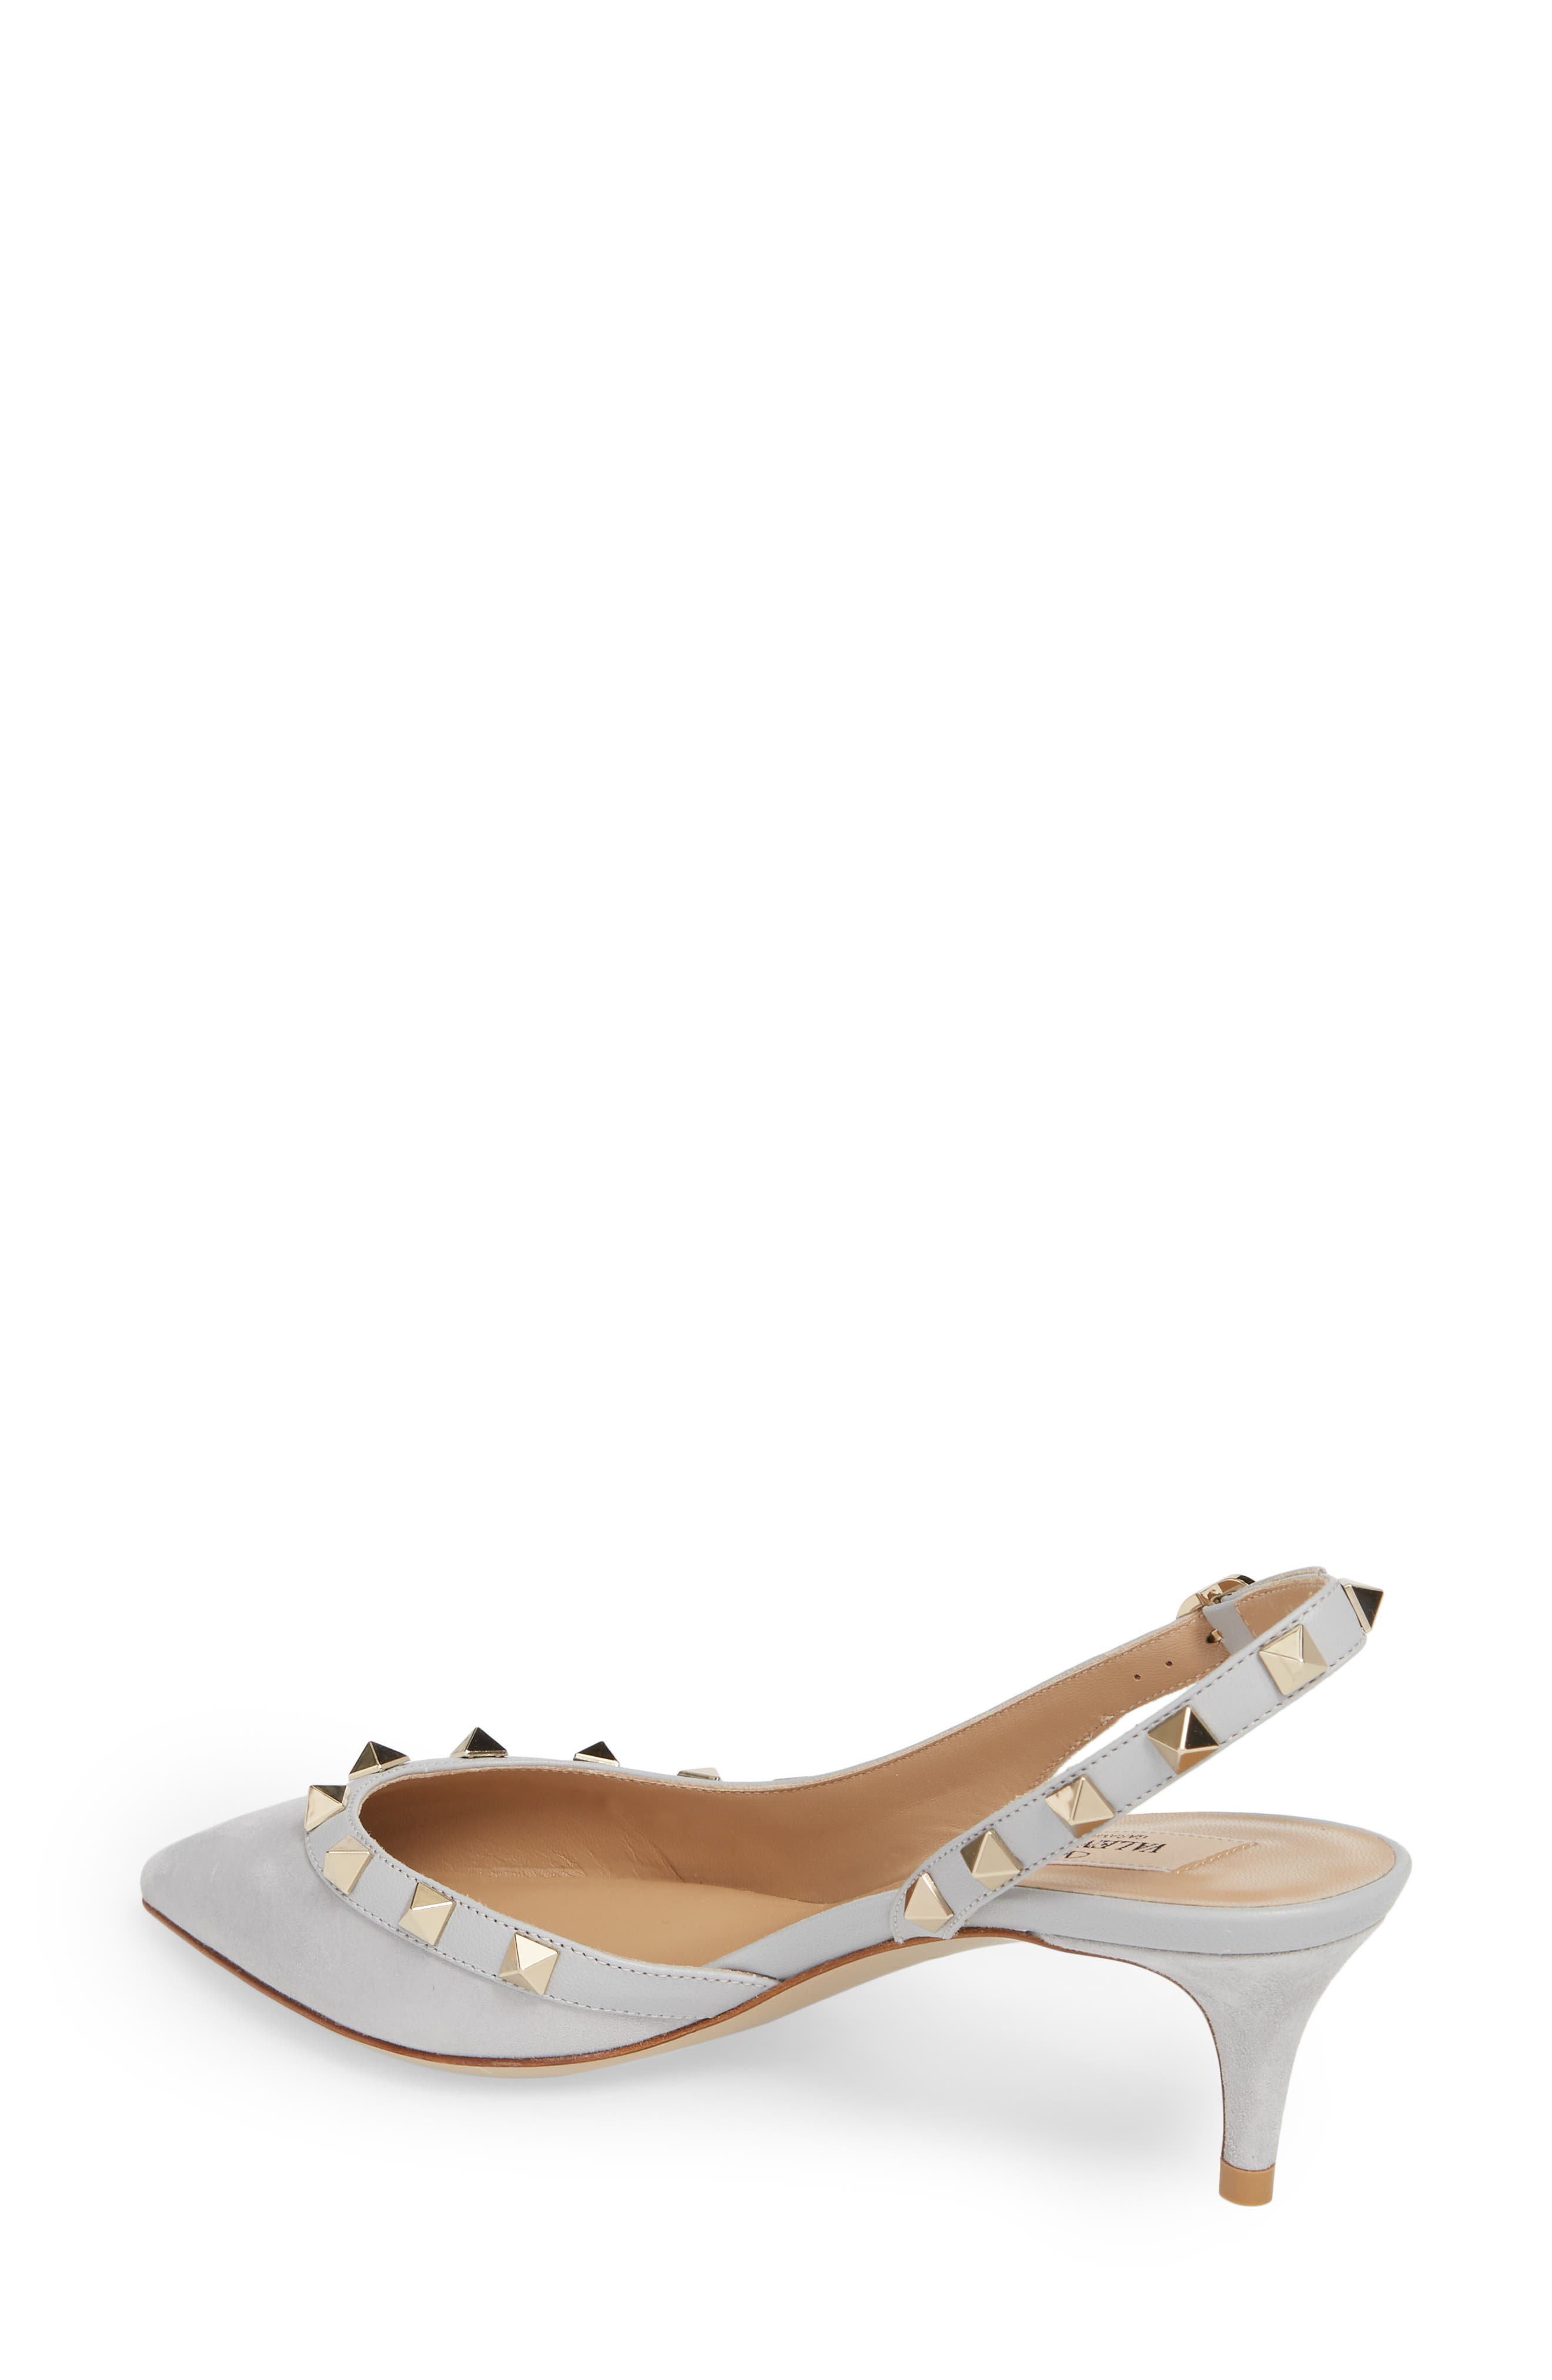 Rockstud Slingback Pump,                             Alternate thumbnail 2, color,                             Pastel Grey Suede